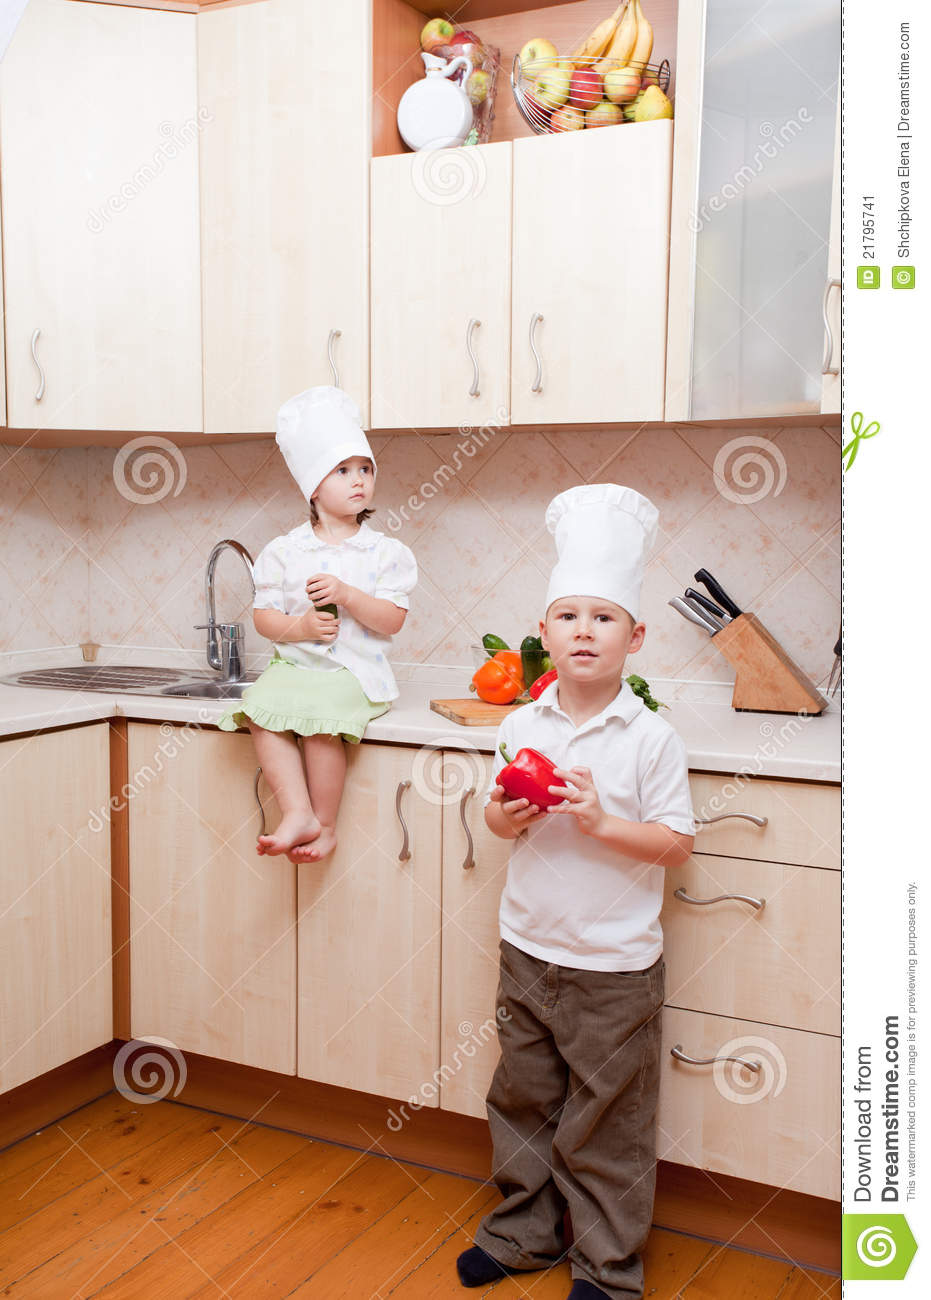 Small children on kitchen stock image image 21795741 for Small childrens kitchen